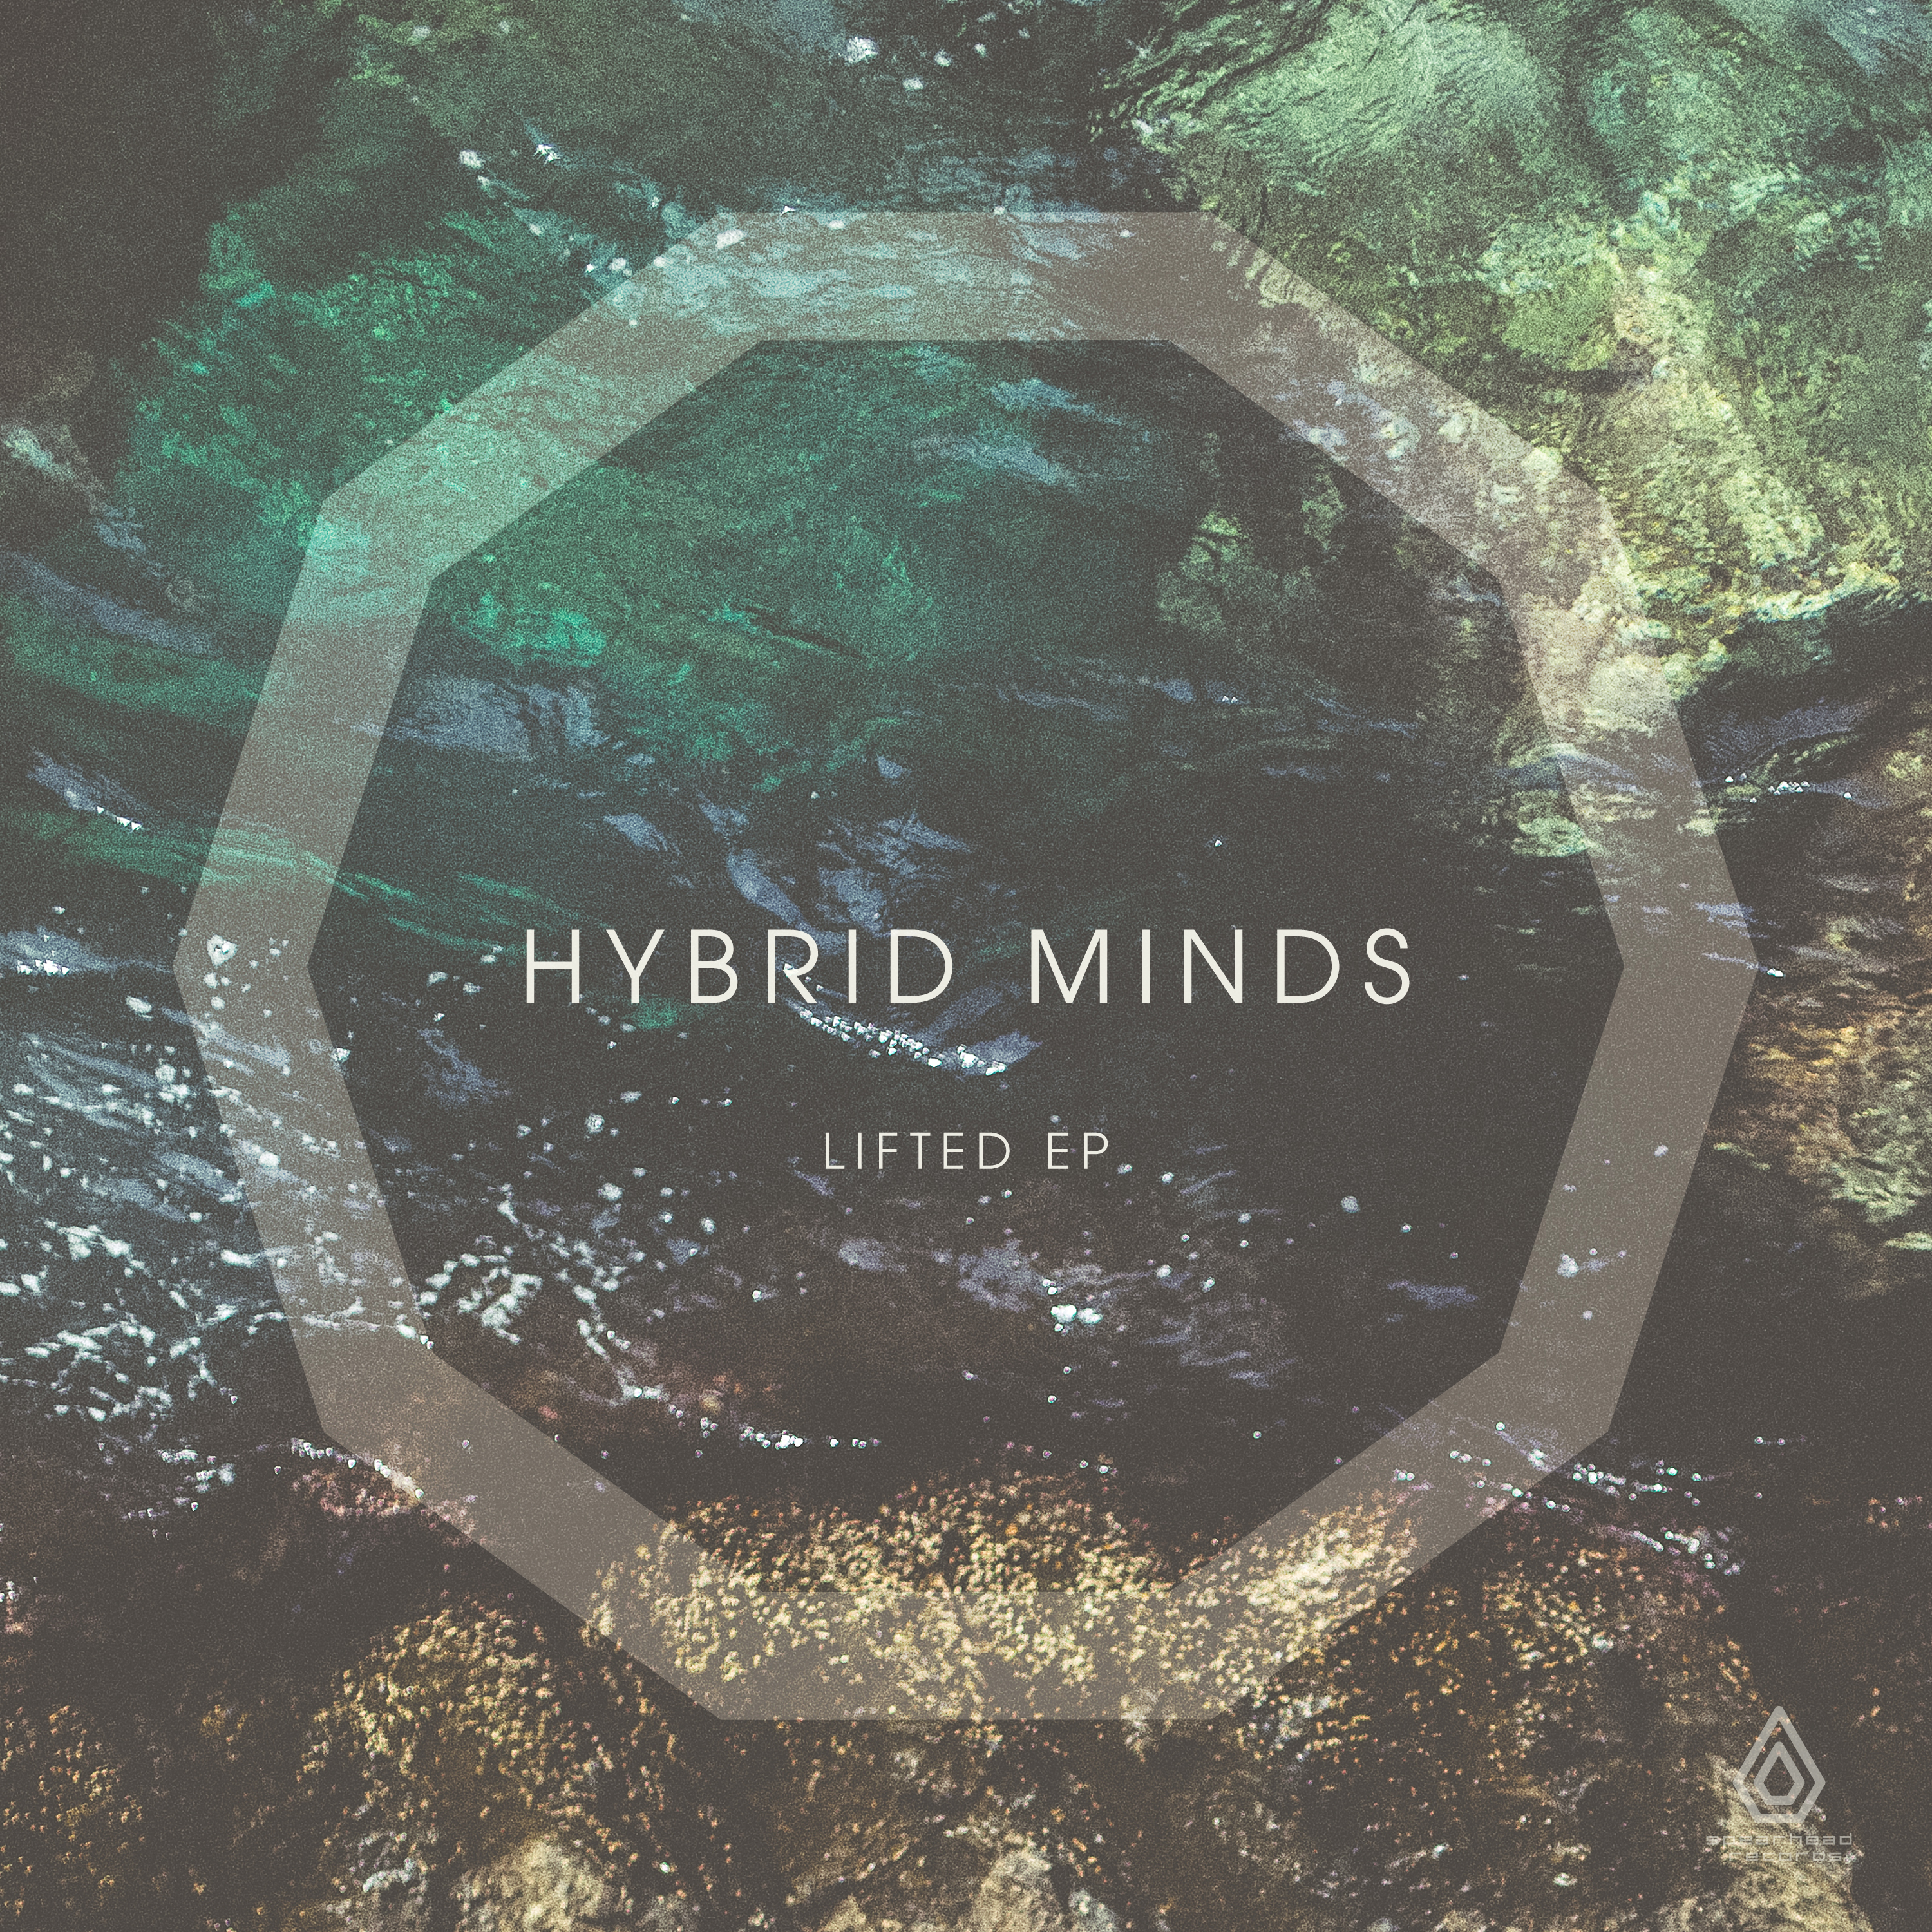 Hybrid Minds/LIFTED EP (PIC DISC) 12""